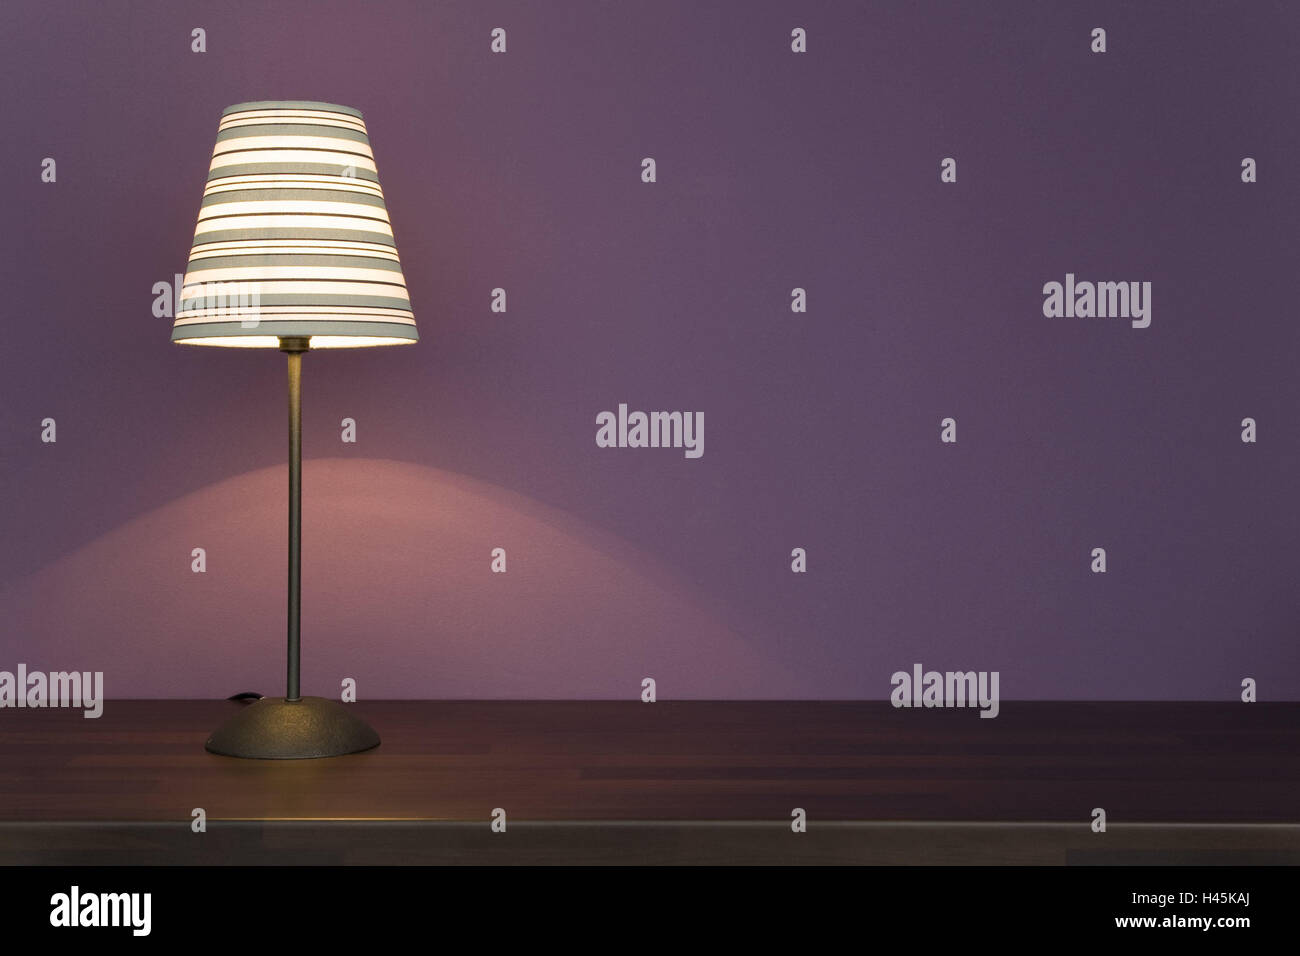 Light bulb storm inside stock photos light bulb storm inside stock lamp light bulb shine chest drawers stand lamp lampshade aloadofball Image collections